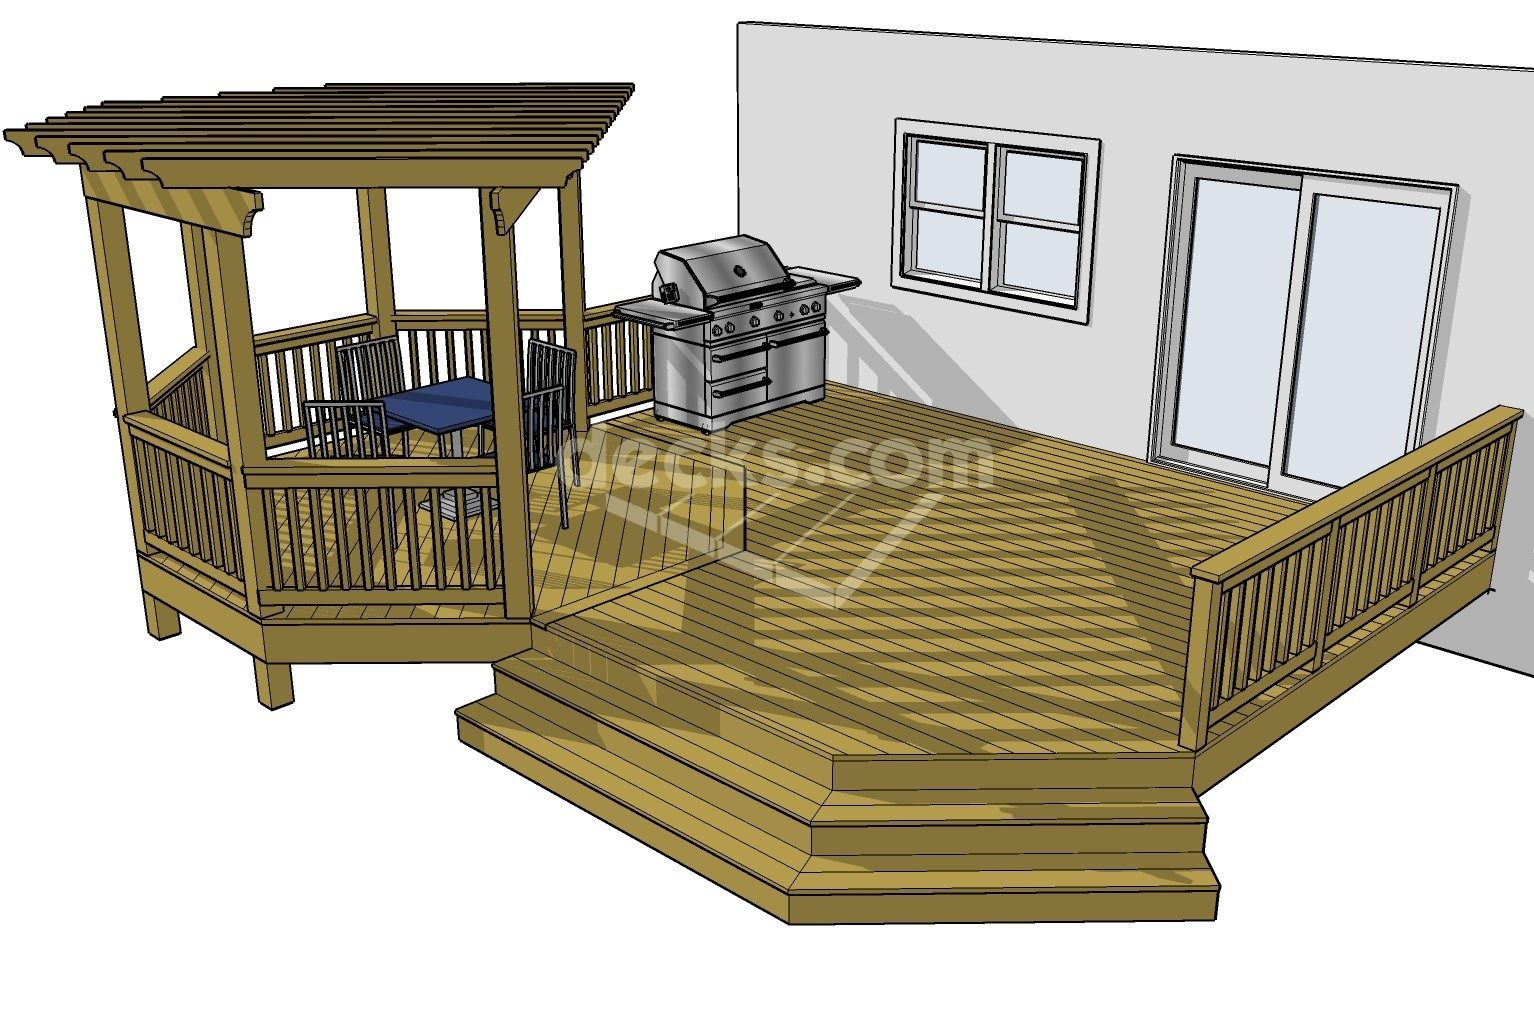 10 tips for designing a great deck - Things consider installing balcony home ...